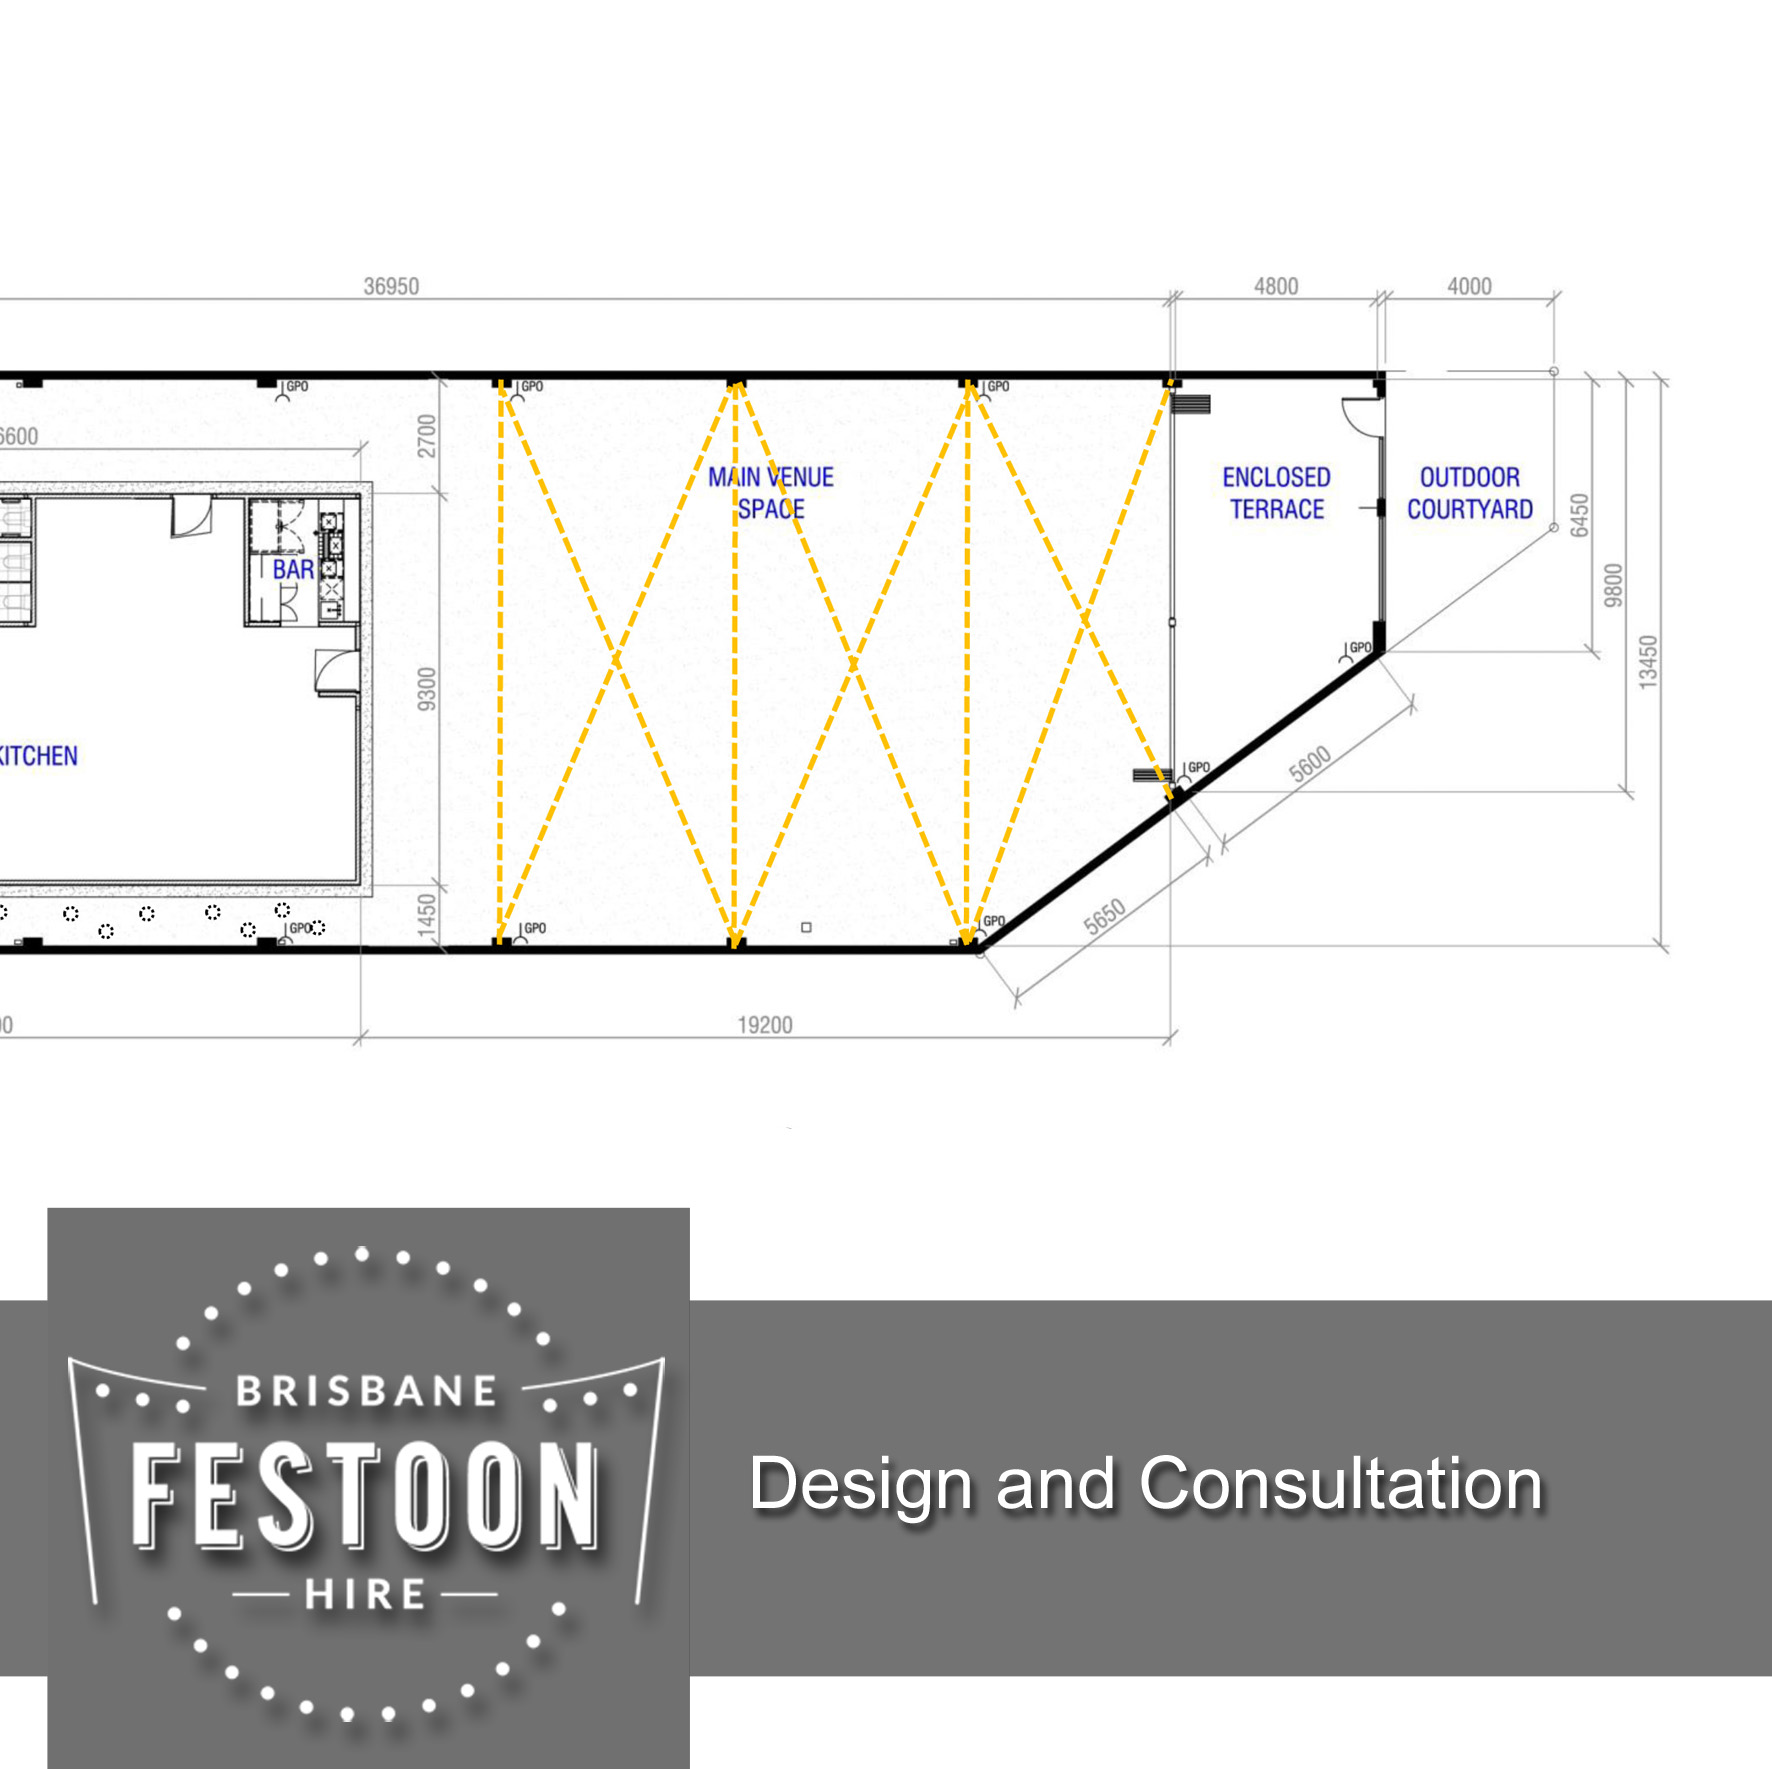 Brisbane Festoon Hire - Design and Consultation BLK 2.jpg